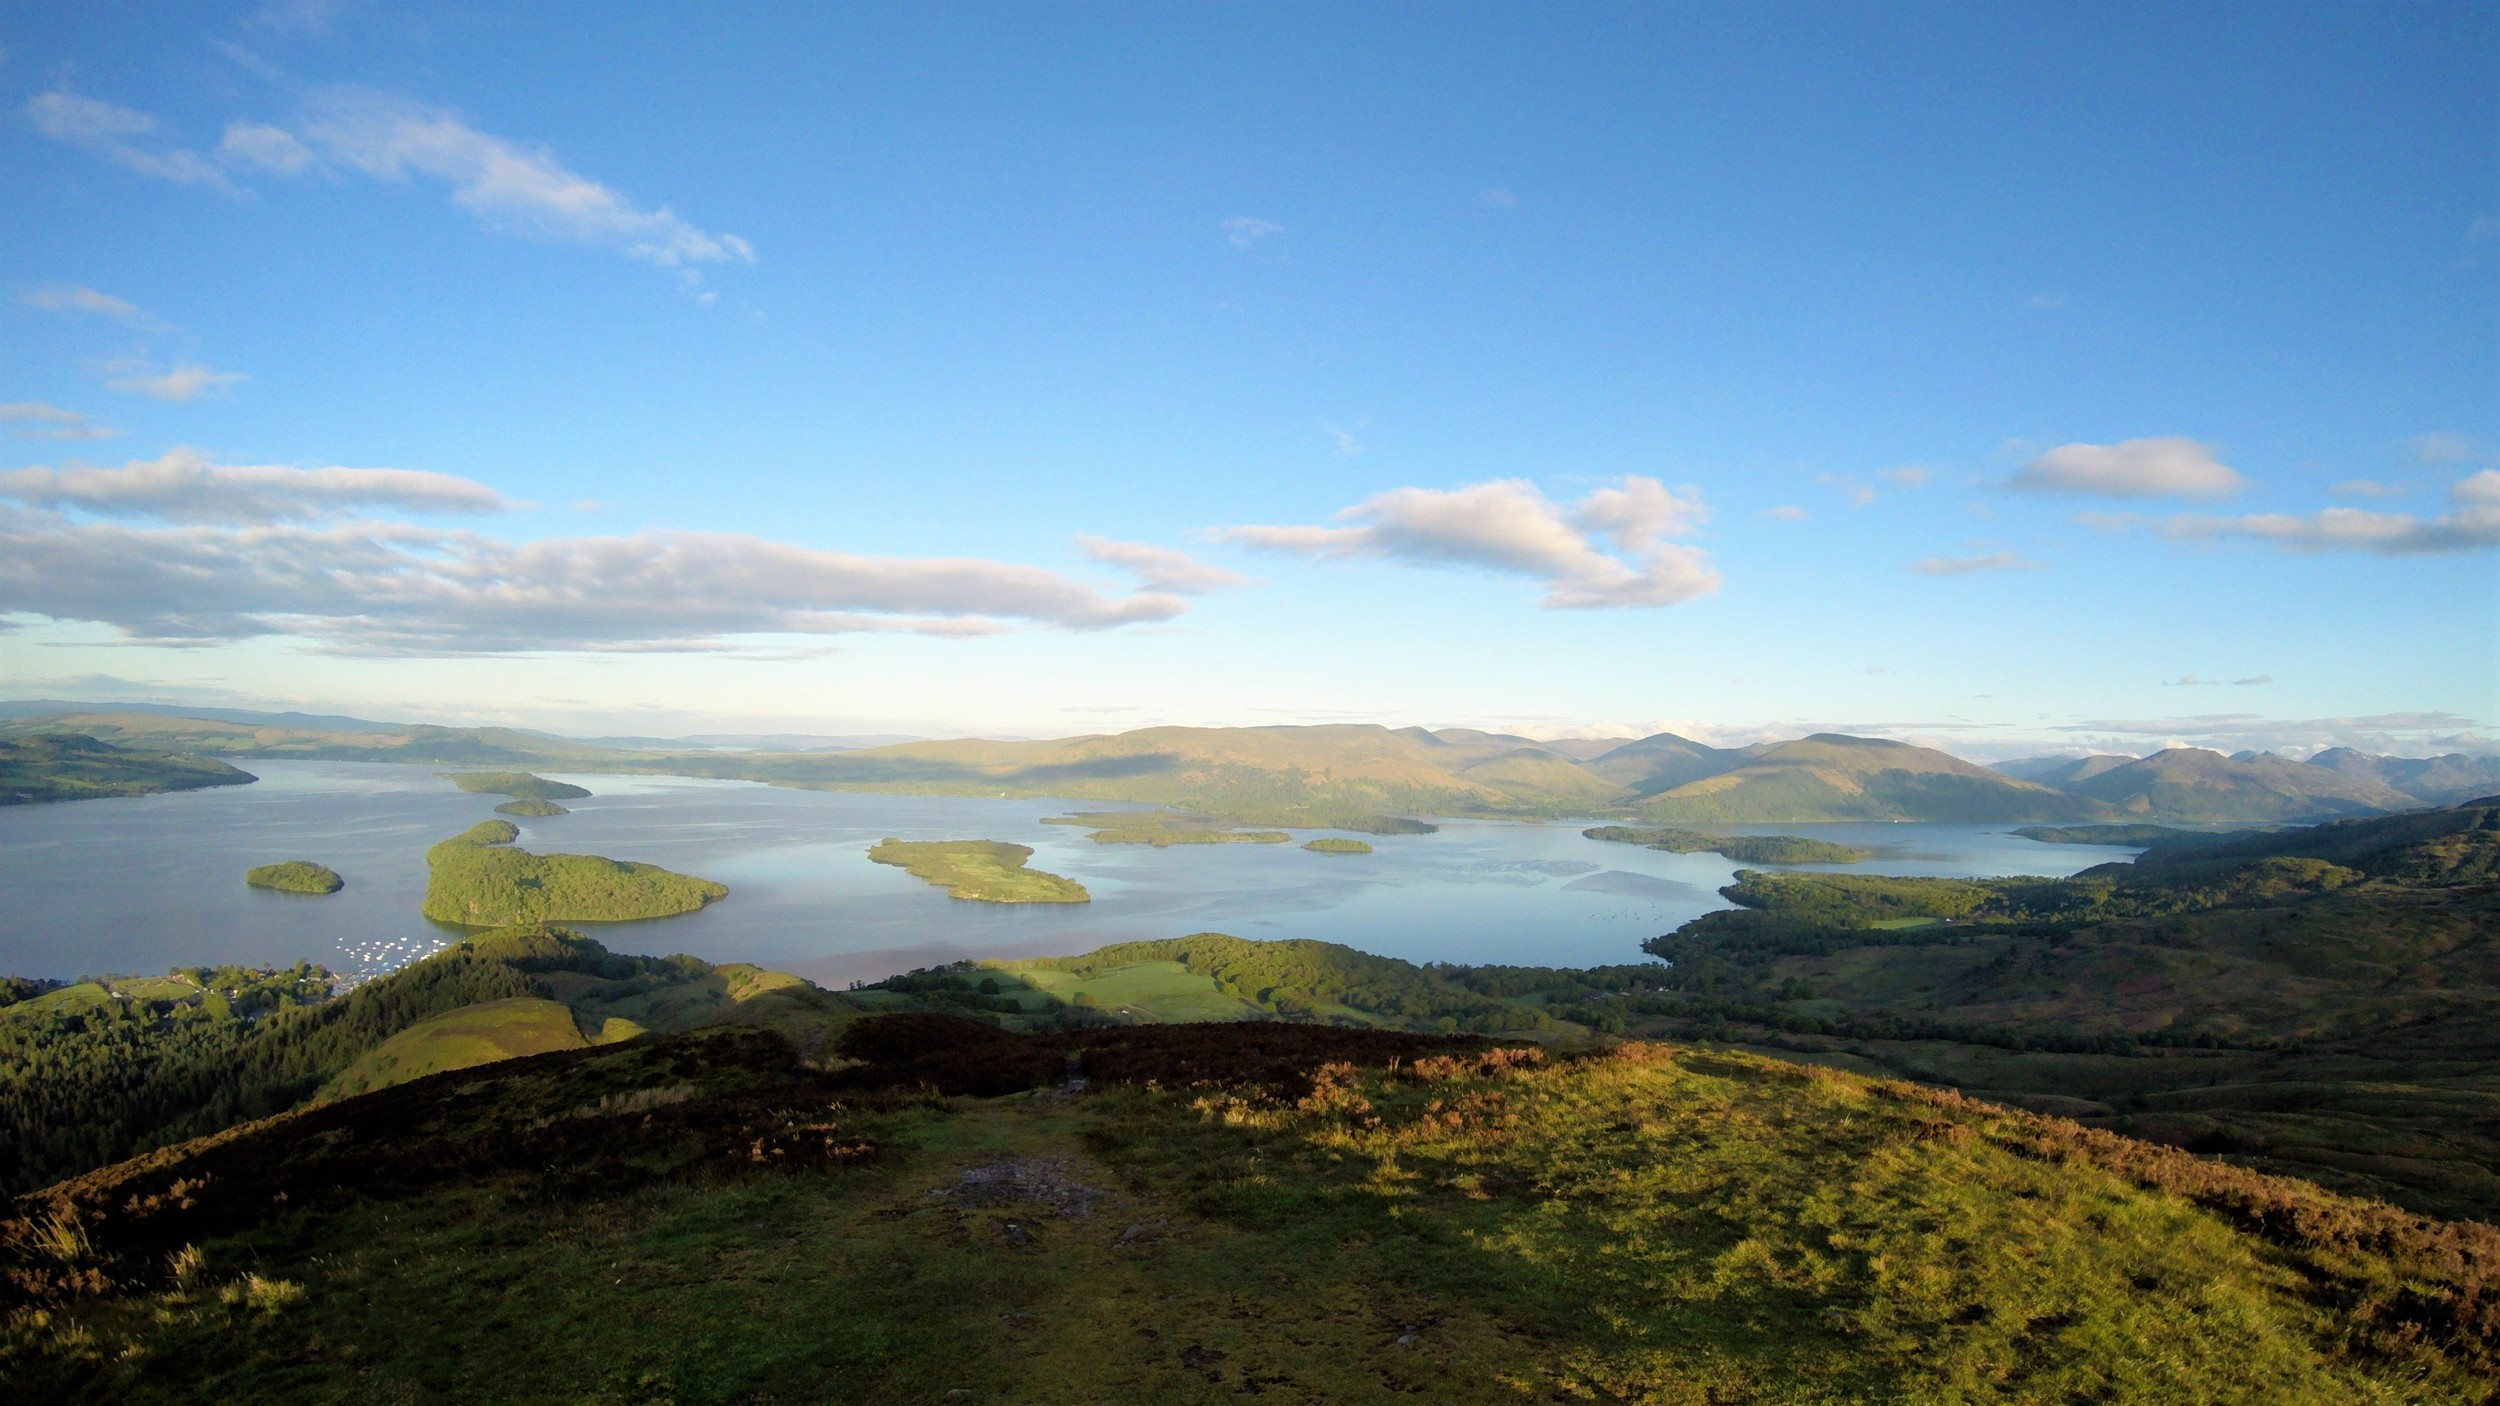 One of the most Iconic scenes from around Loch Lomond, the view from atop of Conic Hill,gazing out along the chain of Island's Inchcailloch, Torrinch, Creinch and Inchmurrin. They all help make up part of the Highland Boundary Fault line, which runs from Stonehaven in the East to the Isle of Arran in the West